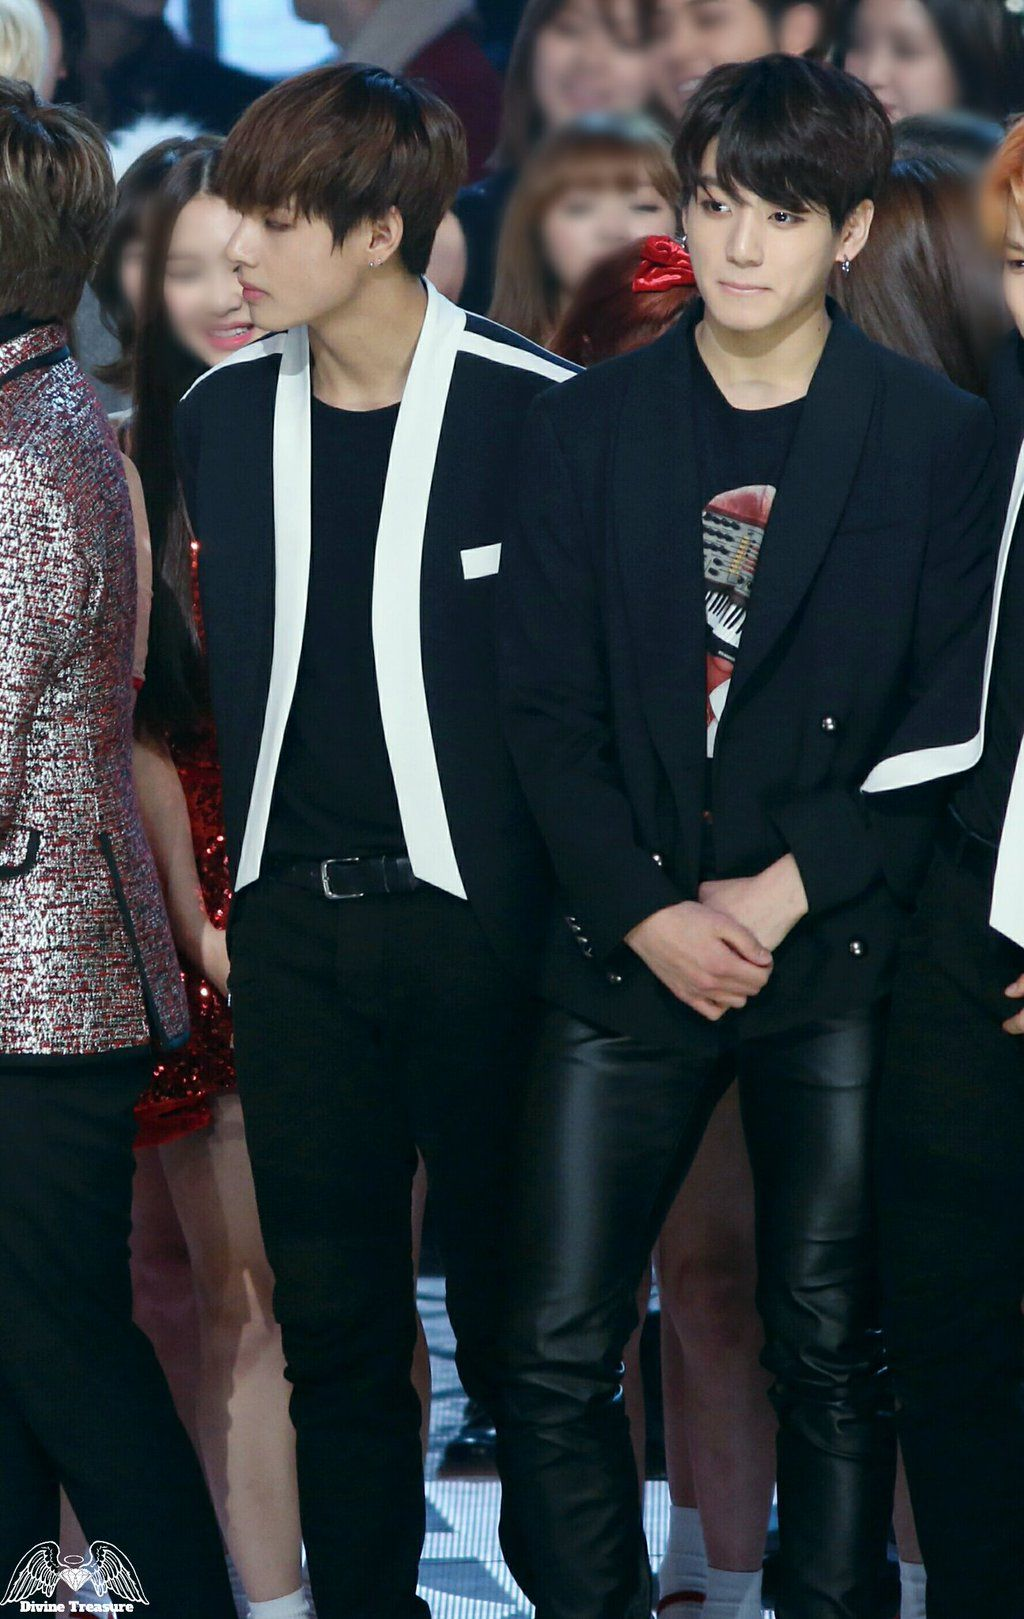 """Divine Treasure on Twitter: """"@BTS_twt 151231 가요대제전 I just can't reach out to tell you that I always wonder what you're up to.#정국 #태형 #Jungkook #V https://t.co/hsbD5HX5Ut"""""""